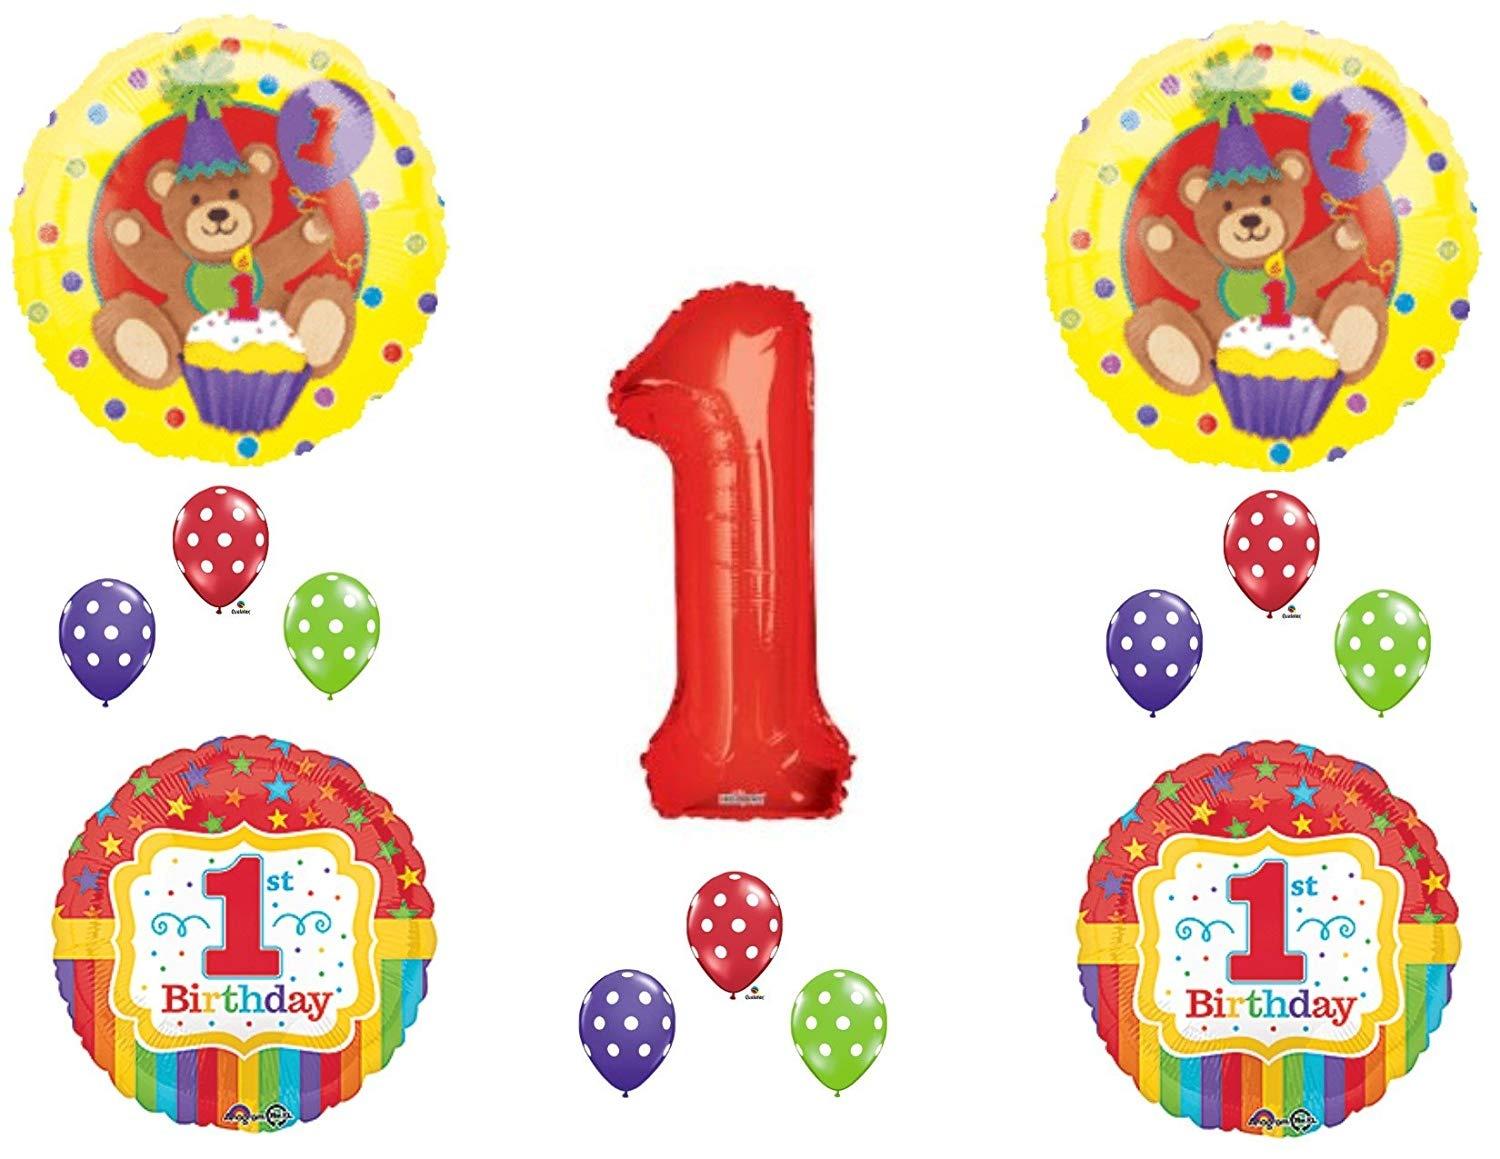 Teddy Bear Party Supplies Toys: Buy Online from Fishpond.co.nz